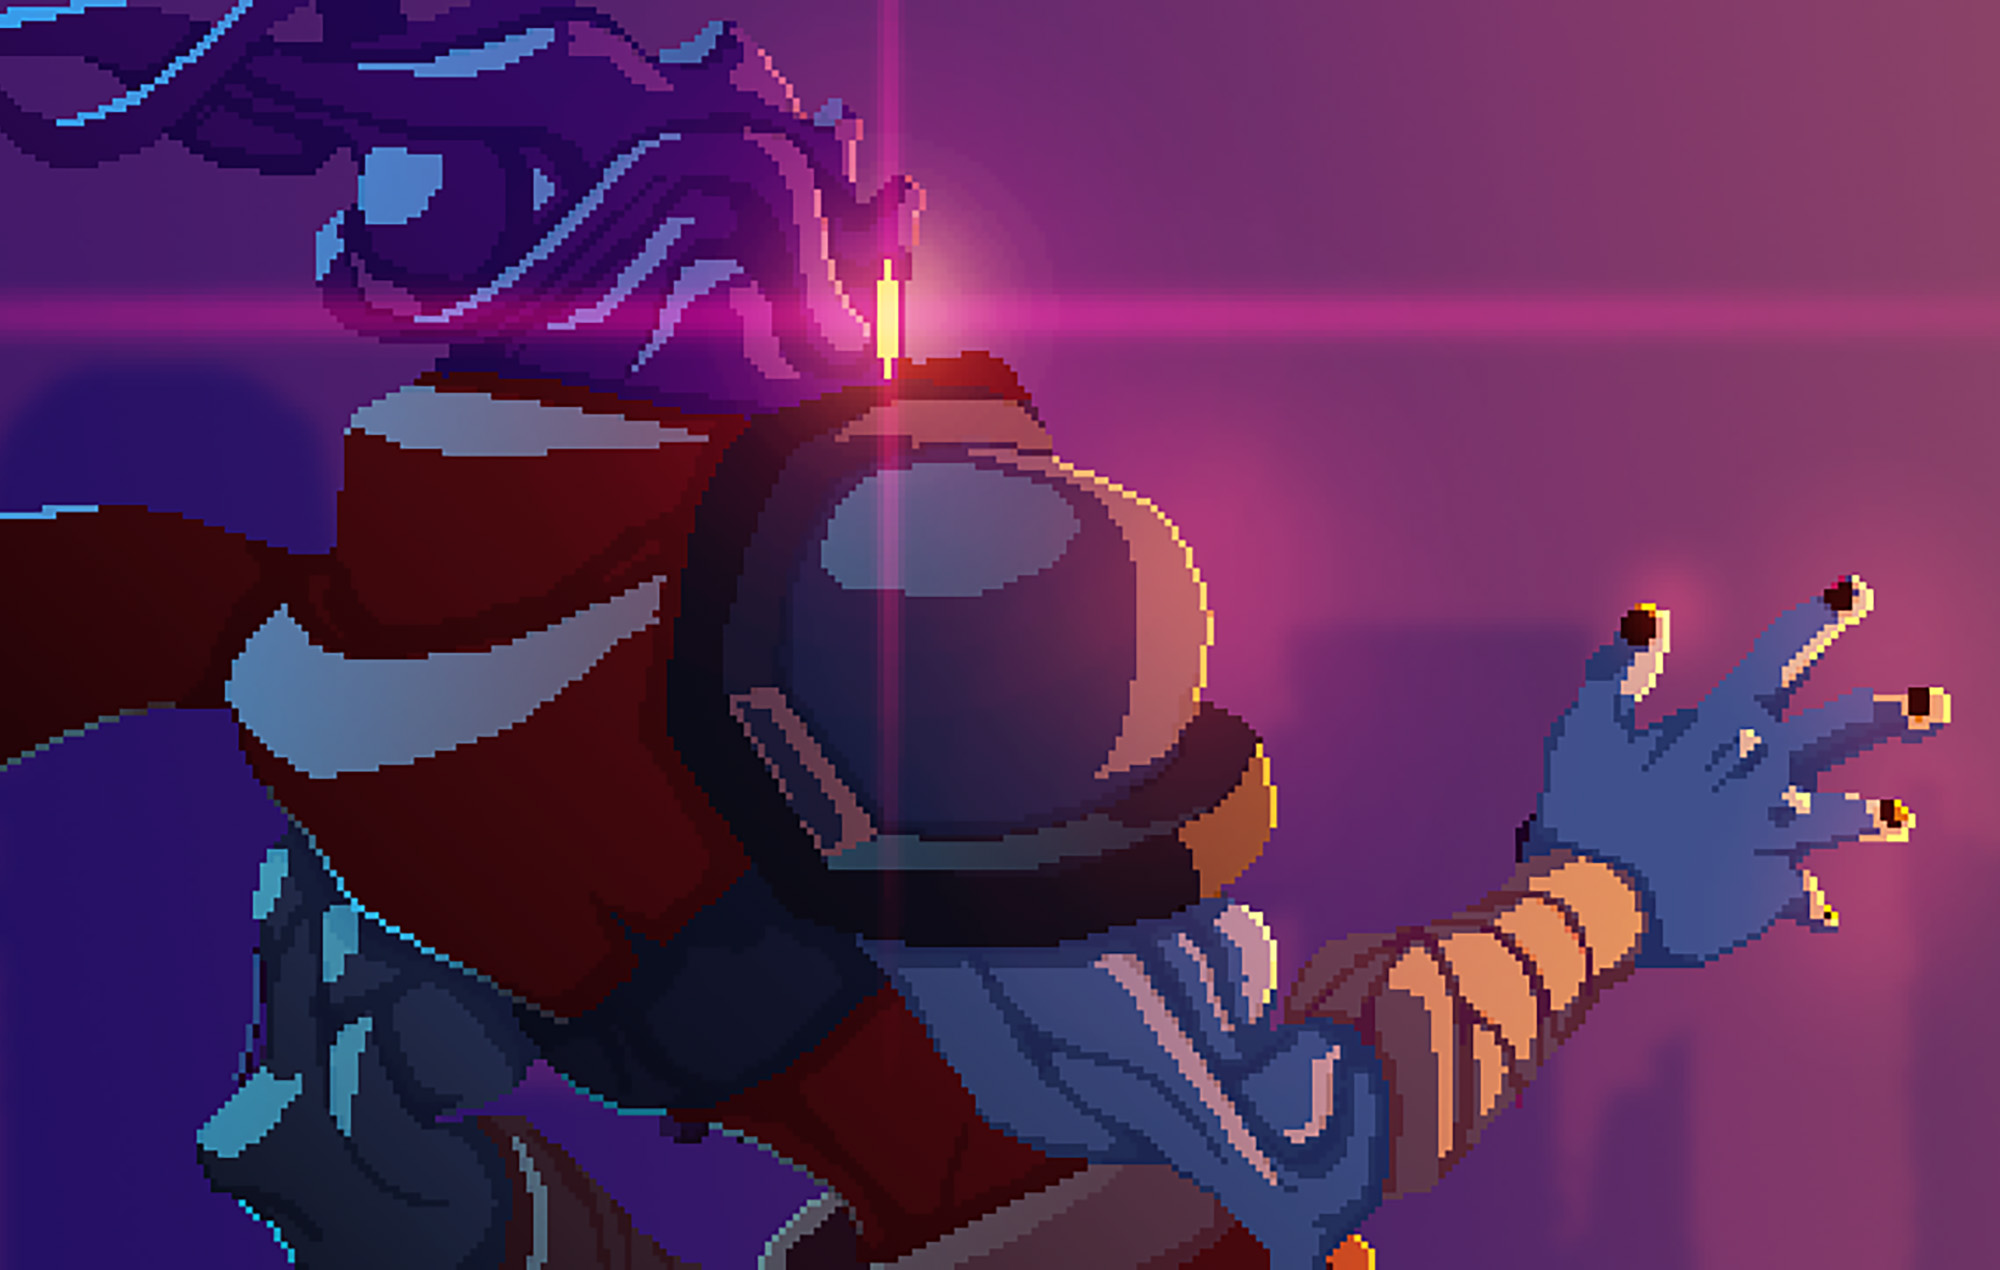 Dead Cells Review A Good Mobile Port Of An Excellent Roguelike Game